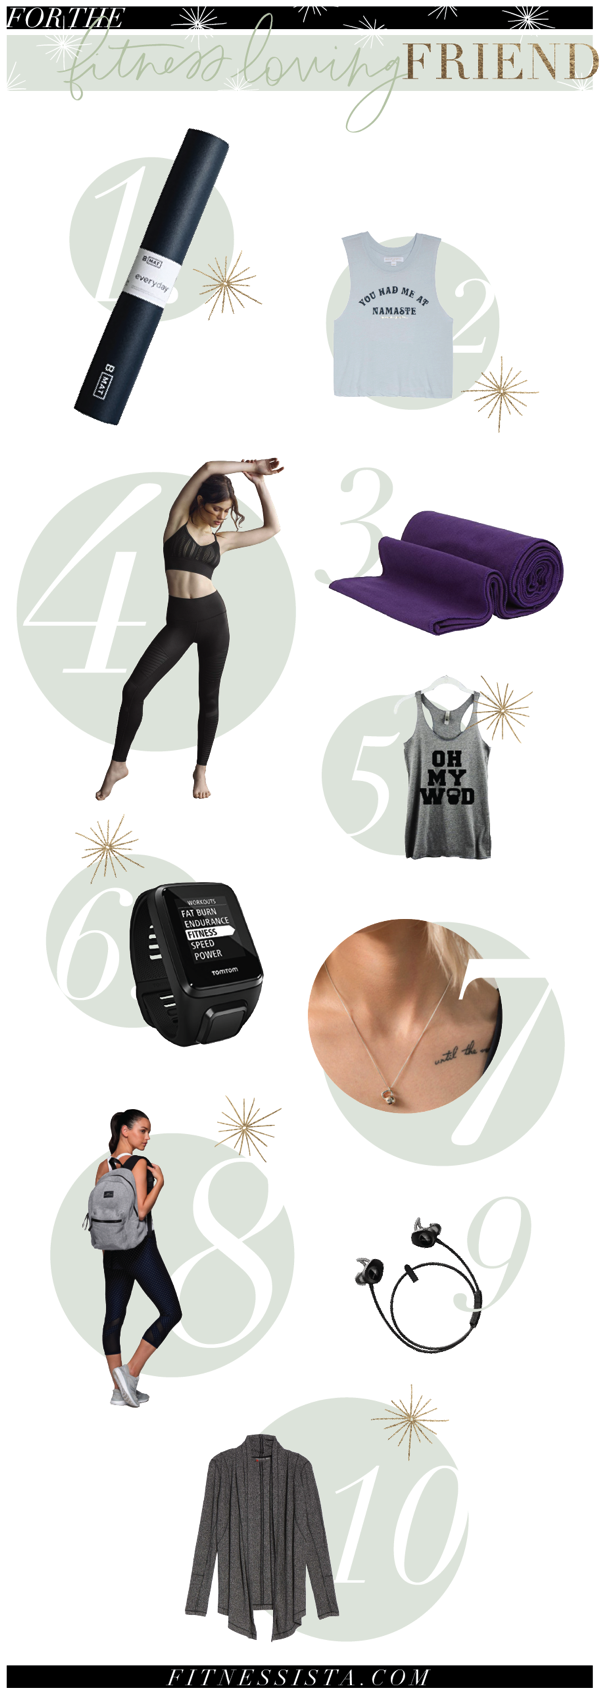 Fitness gift ideas for 2017! Perfect for your favorite workout buddy or to share as a personal wish list. fitnessista.com